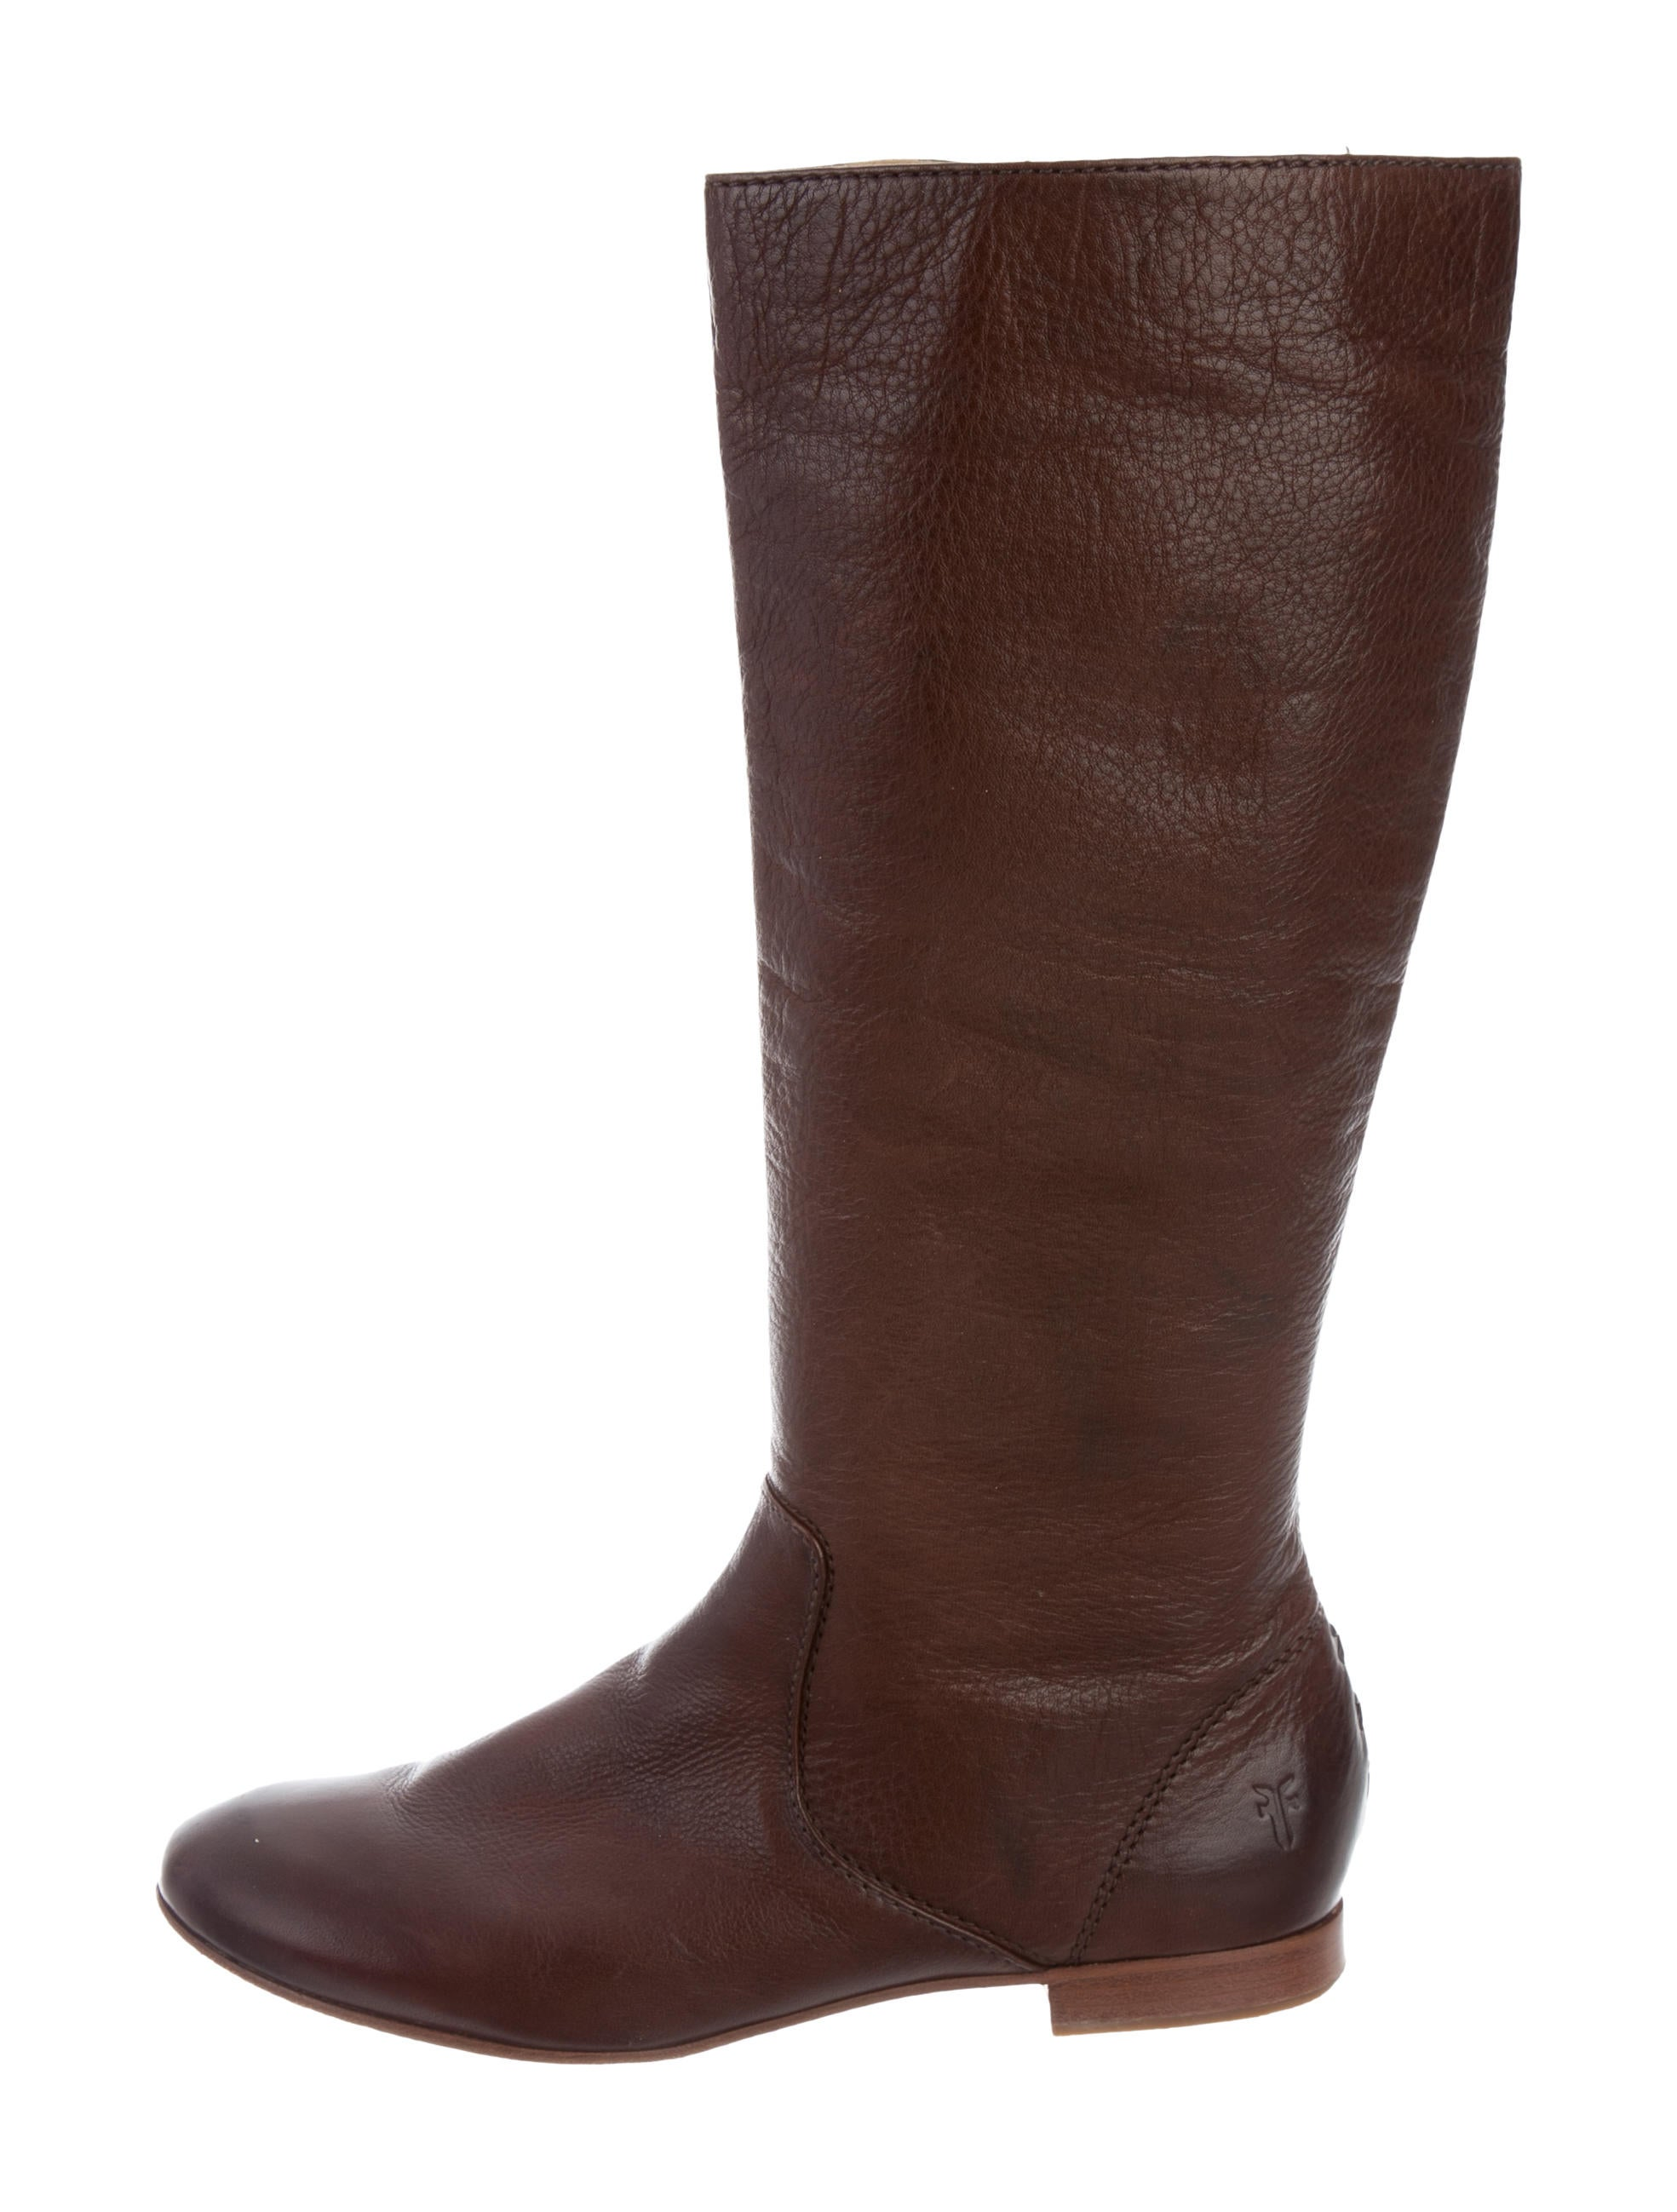 frye leather knee high boots shoes wf821033 the realreal